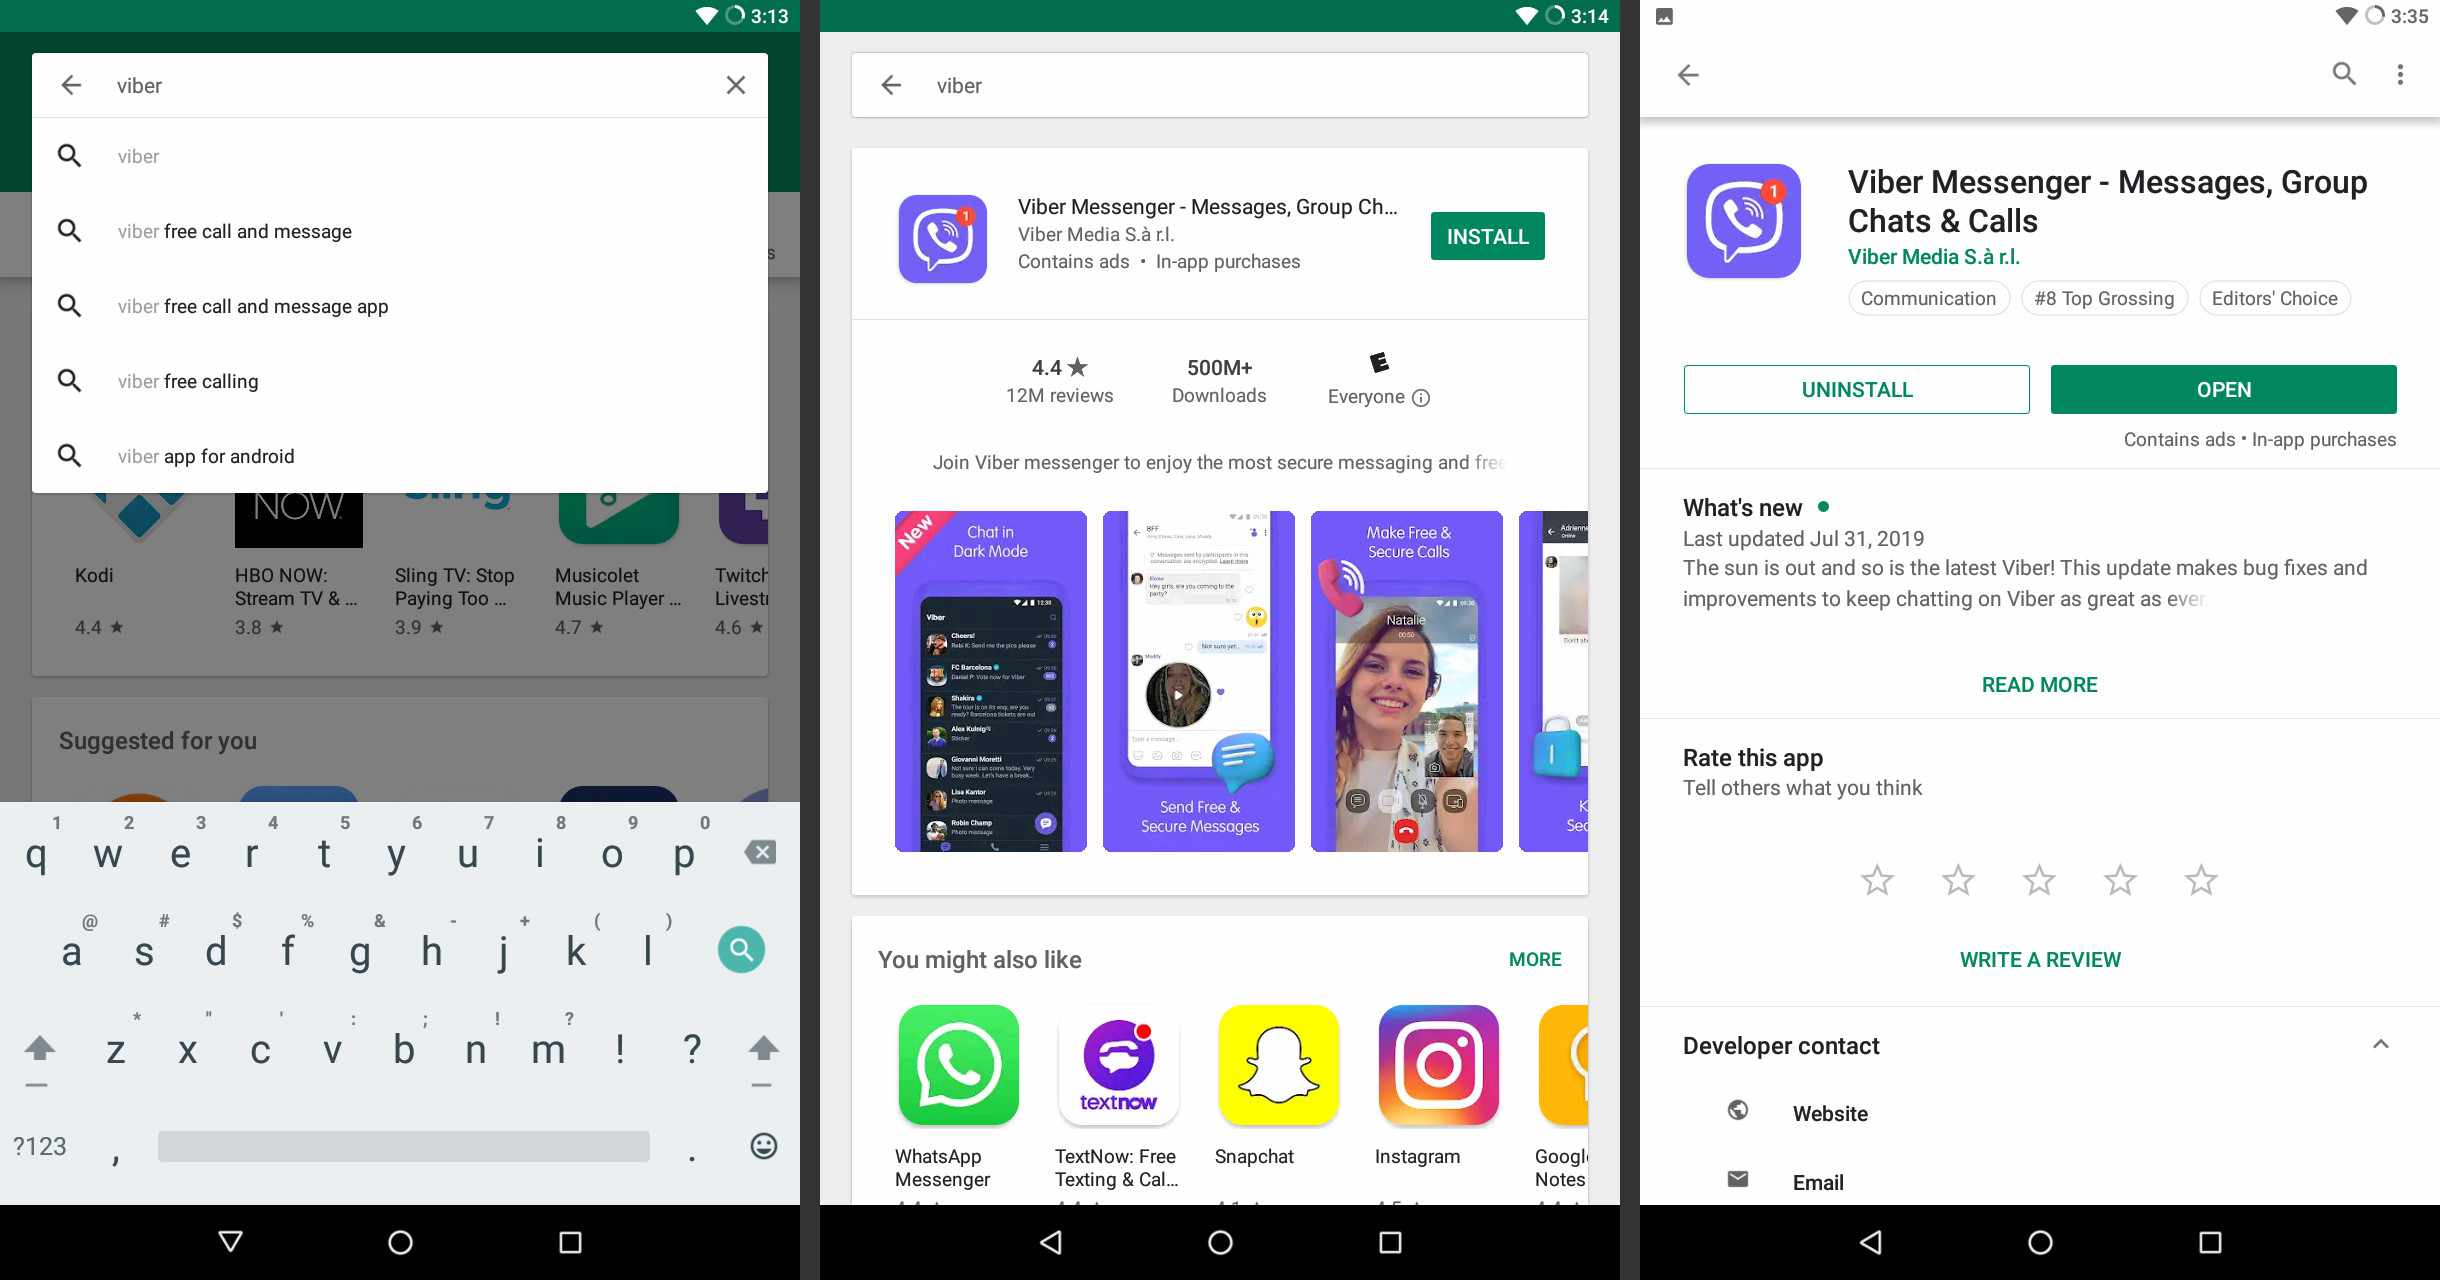 Install Viber on Android